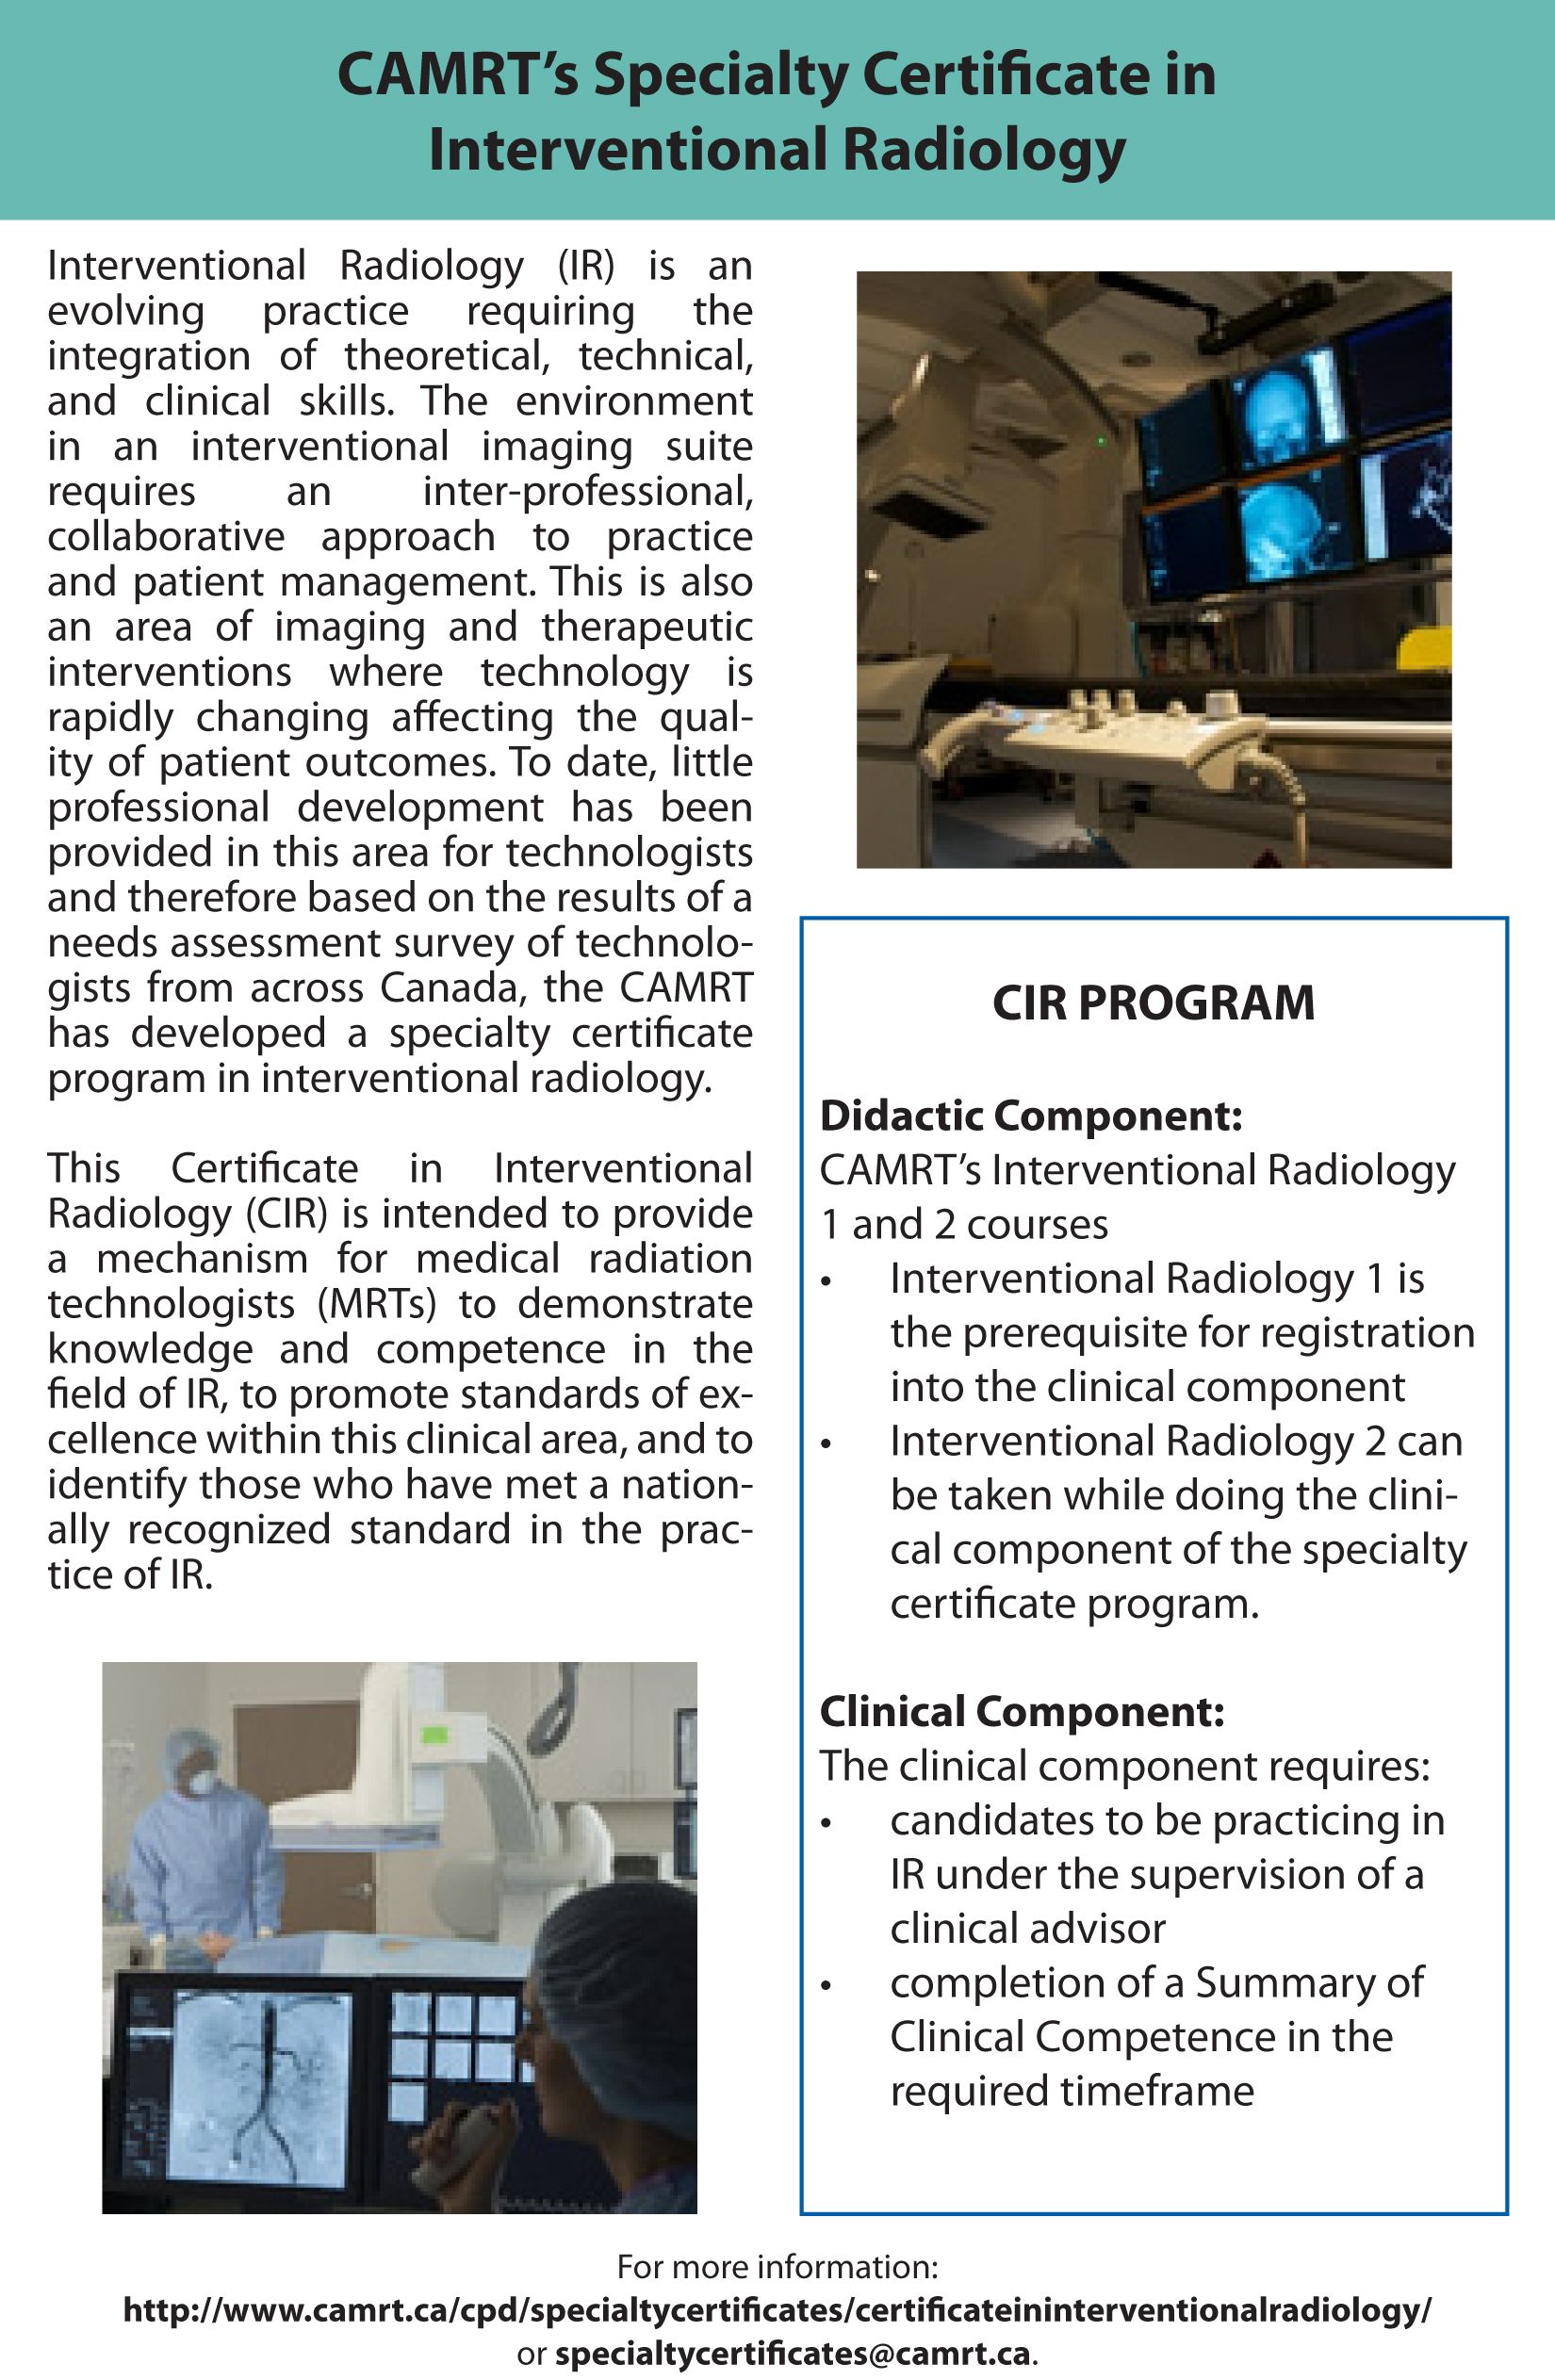 Camrts Specialty Certificate In Interventional Radiology